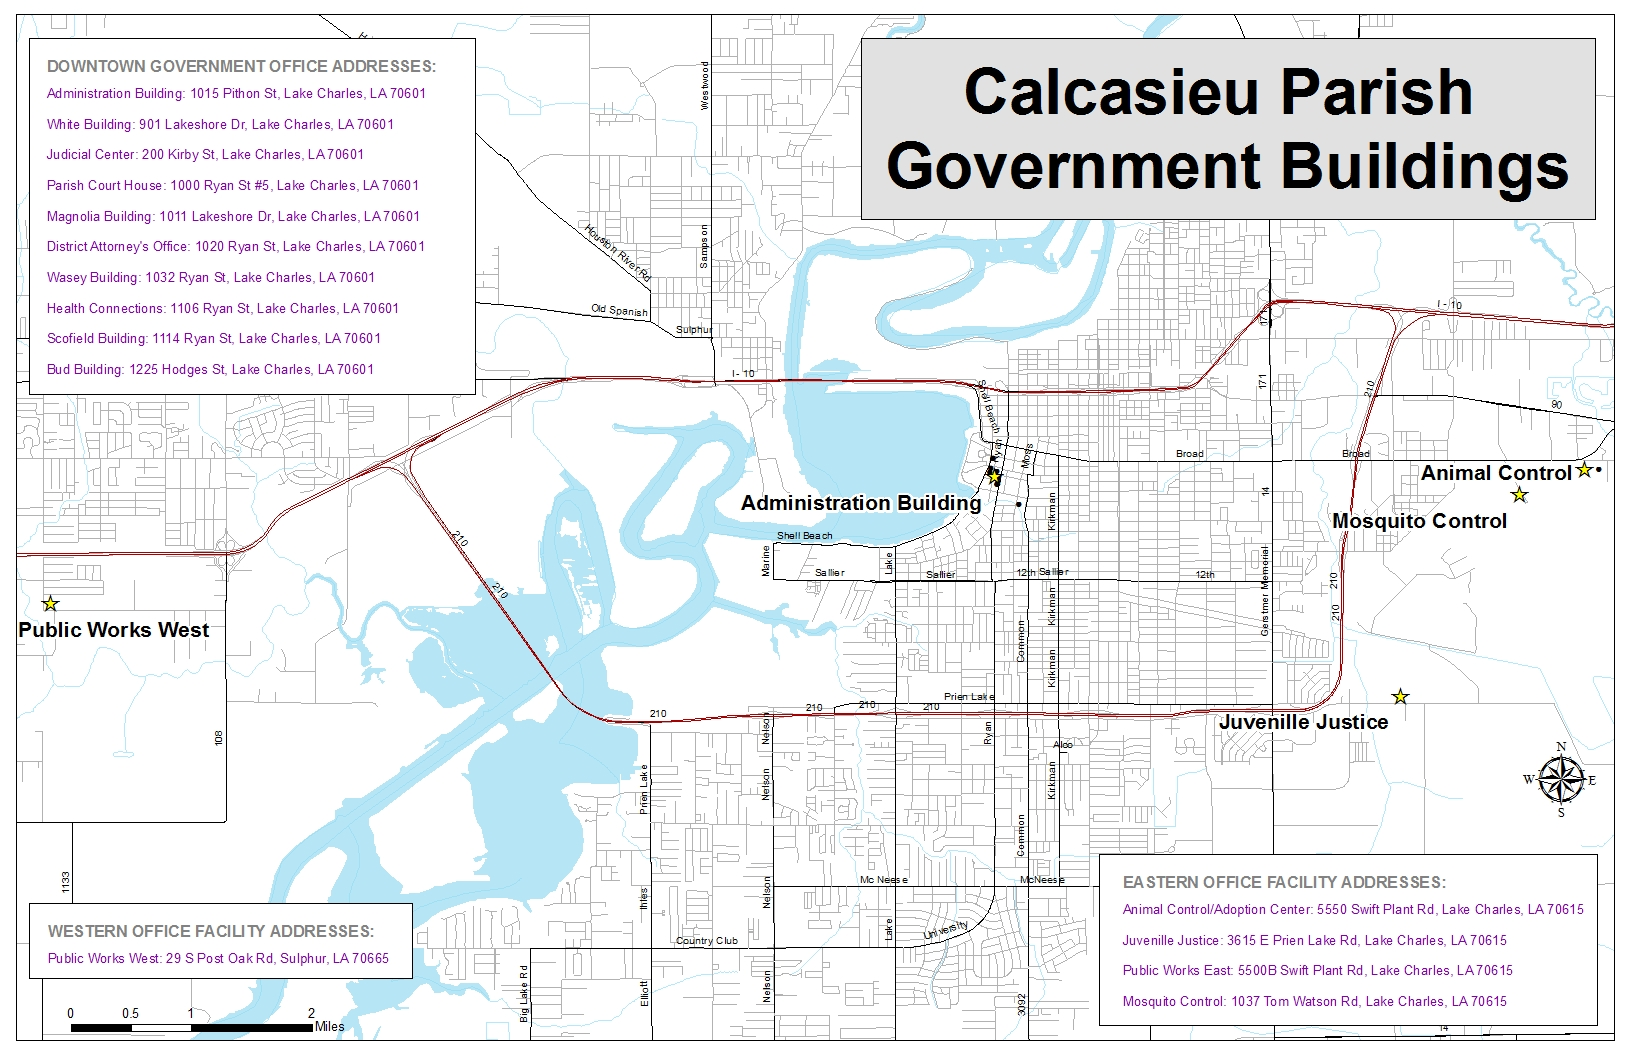 Calcasieu Parish - Govt Buildings